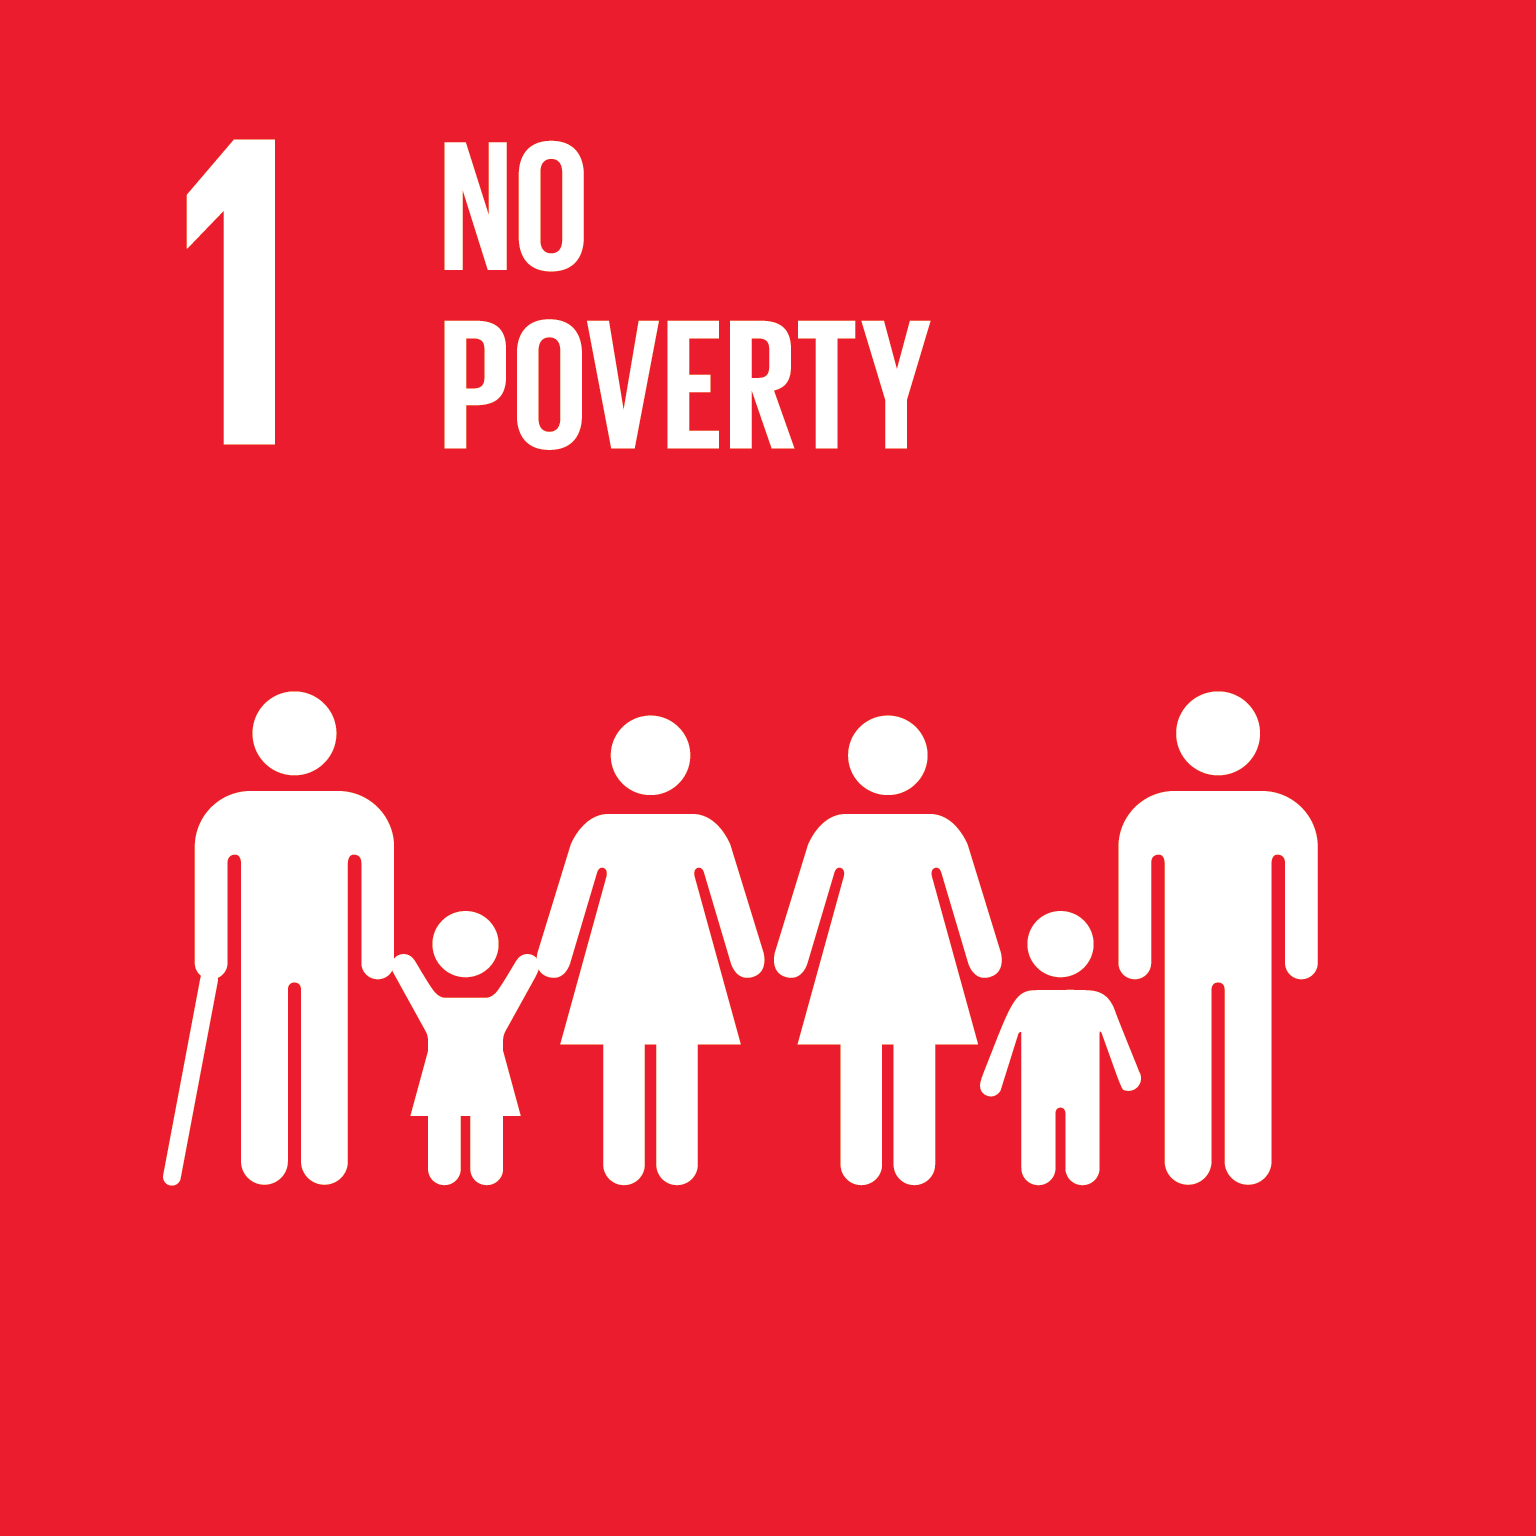 SDG01: No Poverty